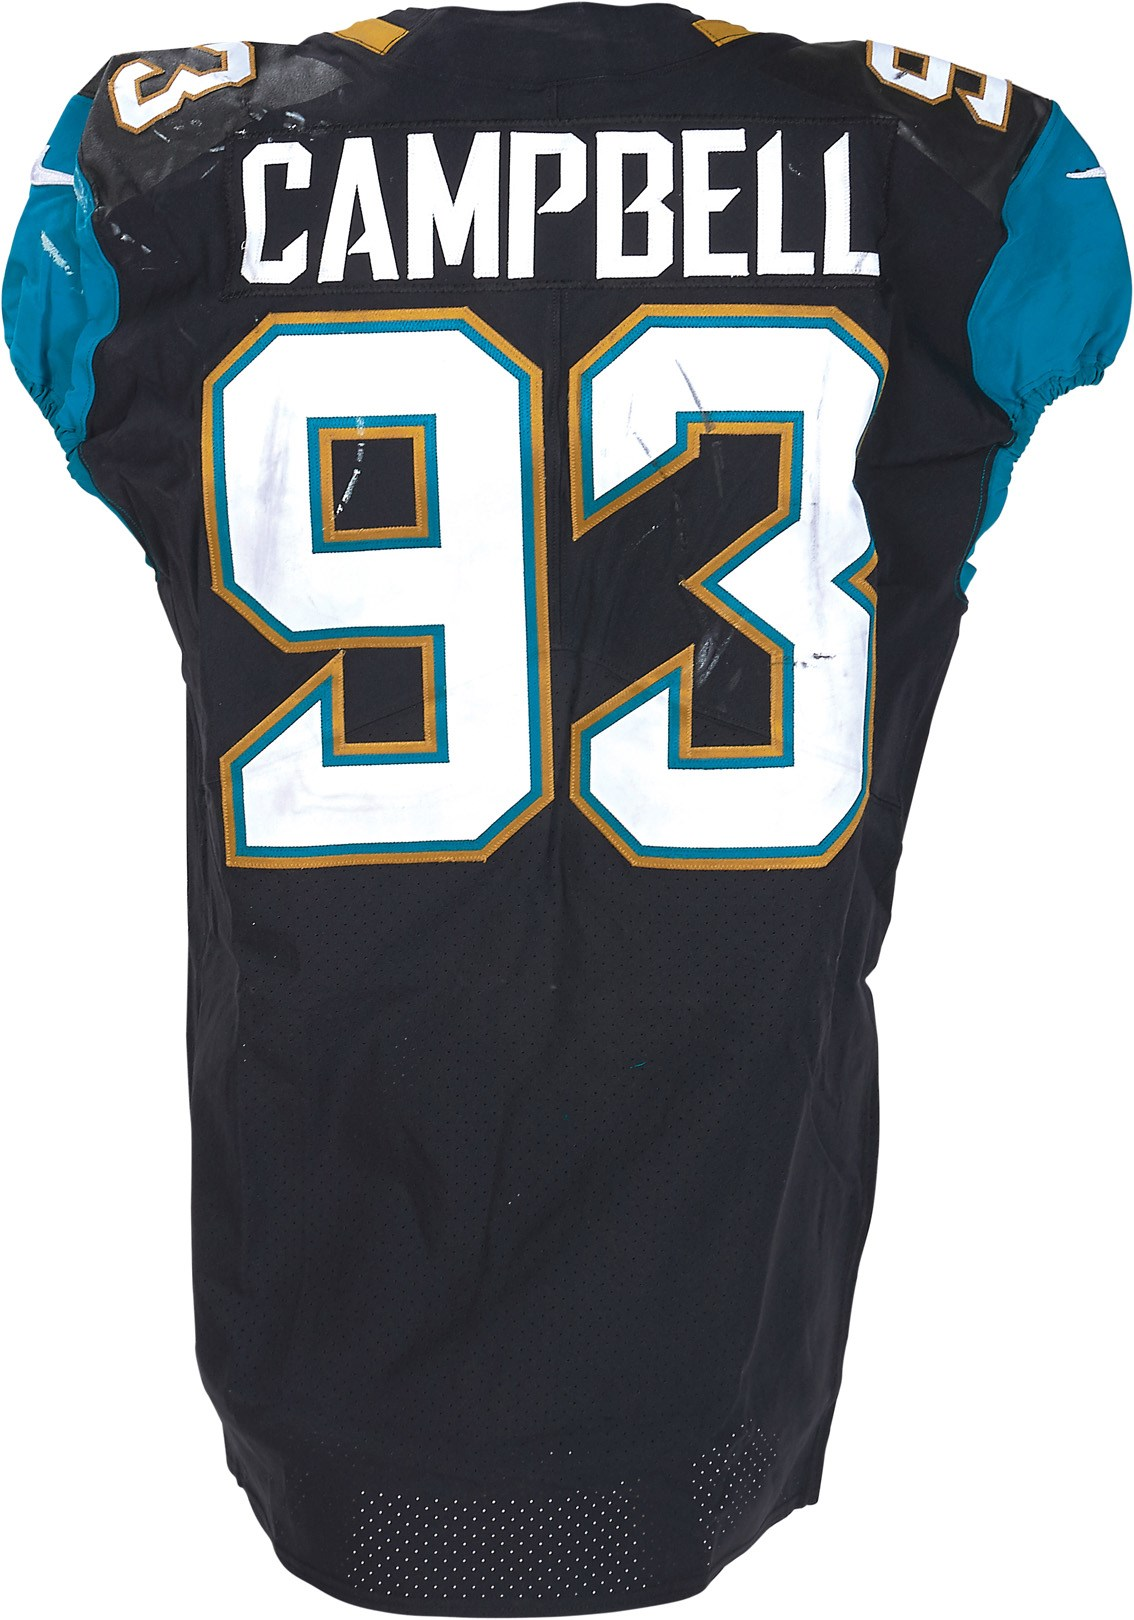 2017 Calais Campbell Game Worn Jaguars Jersey vs. NY Jets - Sack Game (Fanatics & Photo-Matched)